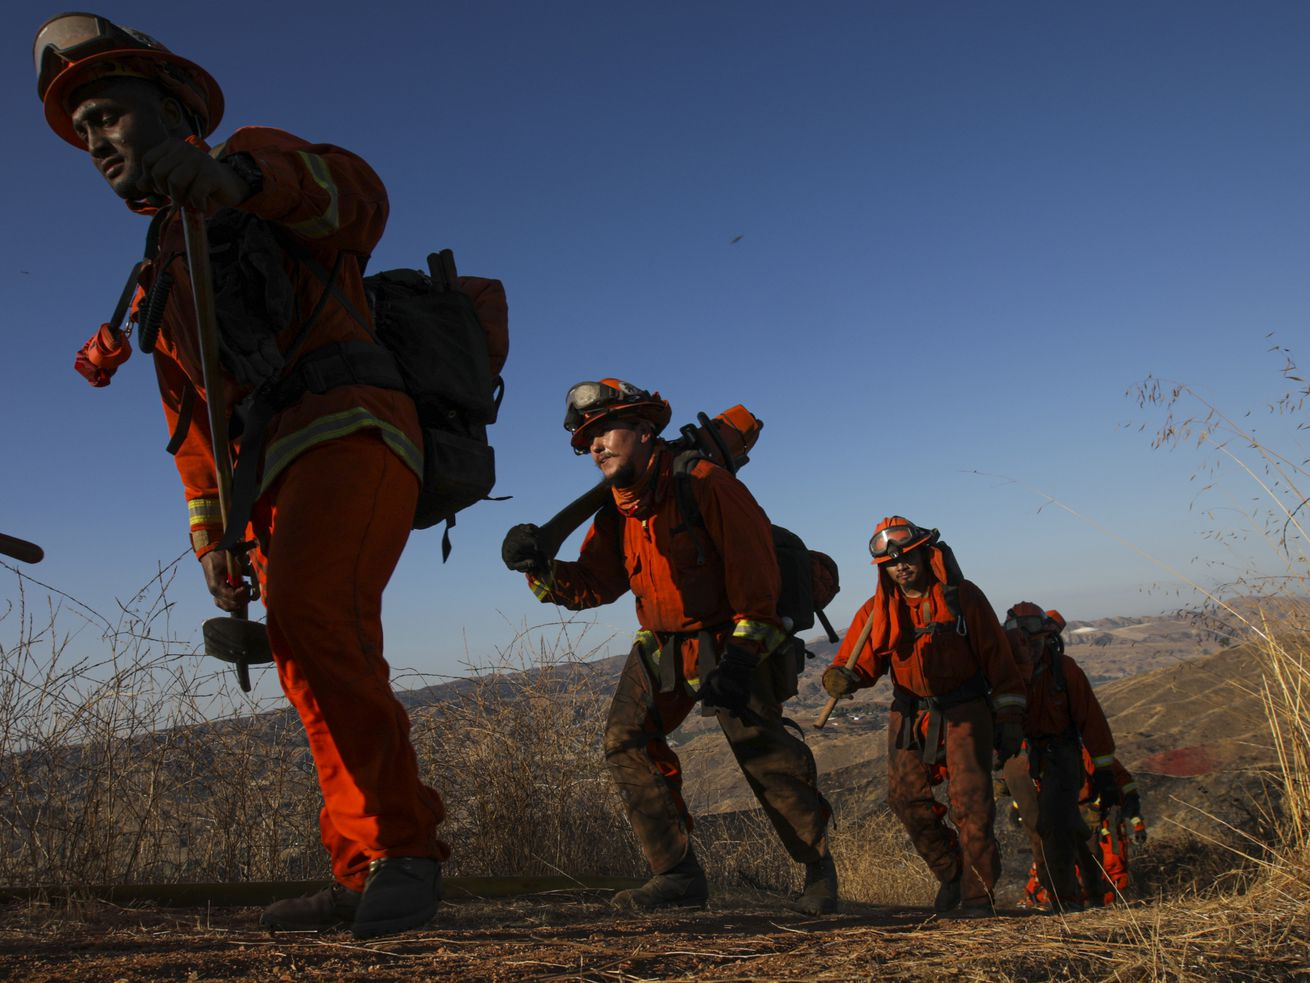 A line of men in orange fireproof jumpsuits, their faces blackened with soot, carry bulging rucksacks and tools through tall brown grass.